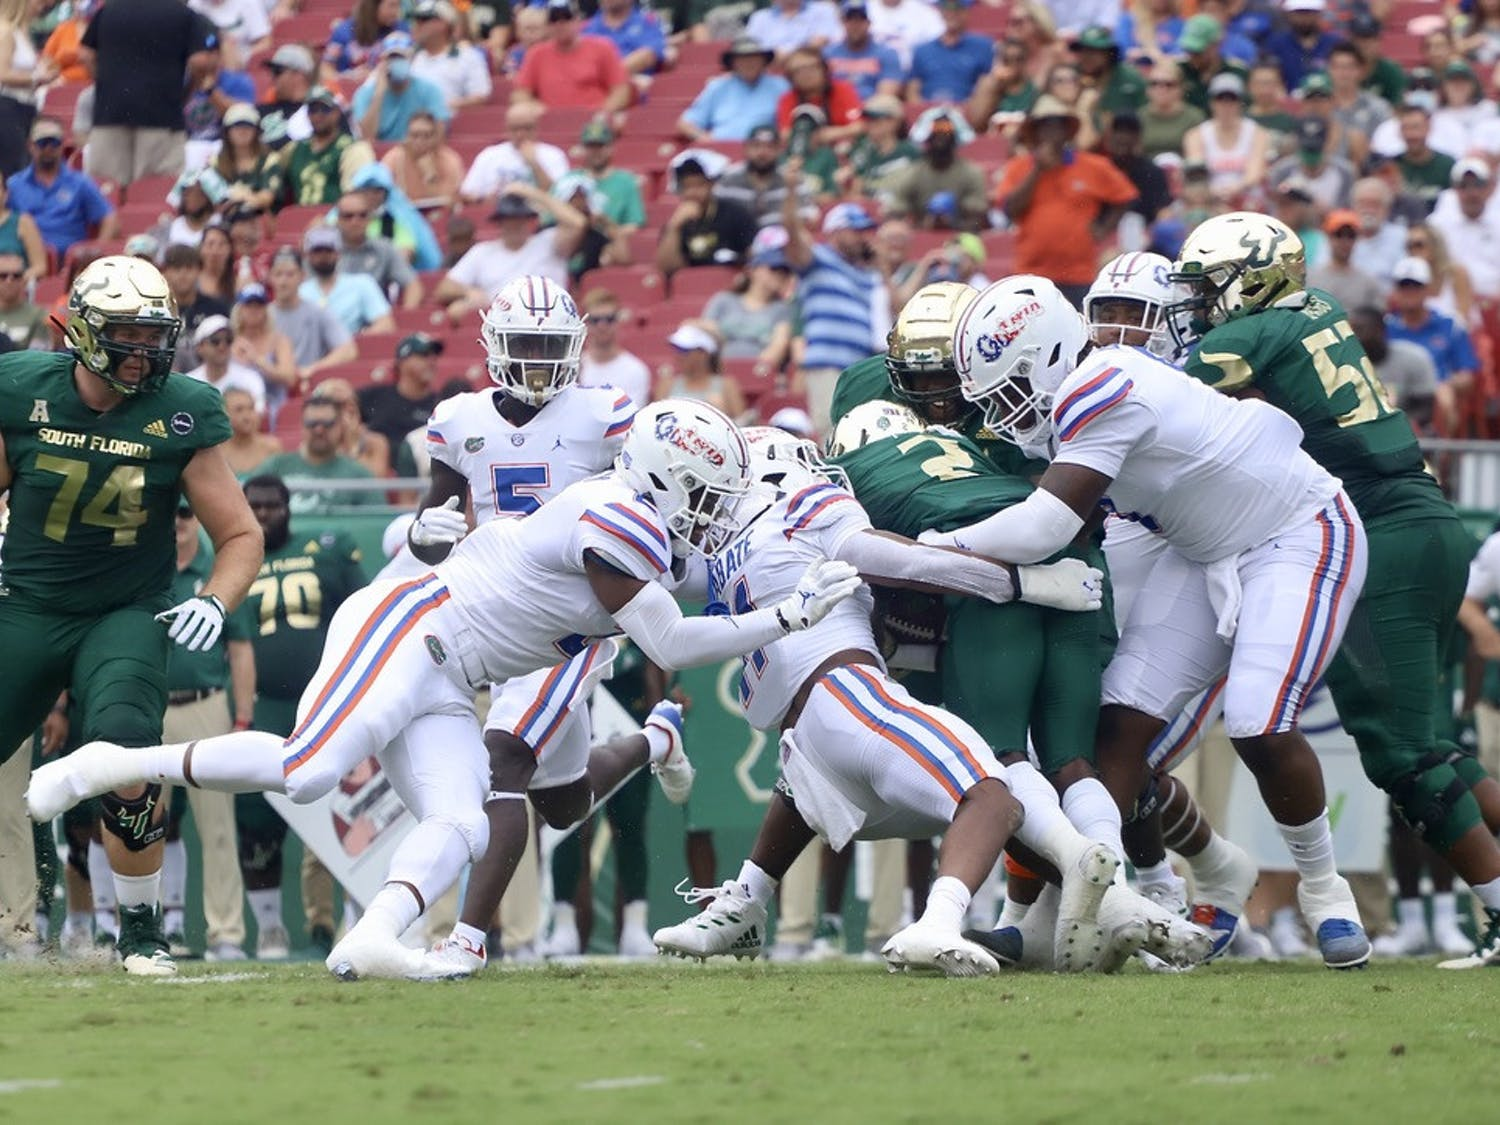 Florida's Mohamoud Diabate (11) and two other Gators tackle USF running back Darrian Felix during their 42-20 victory on Sept. 11.